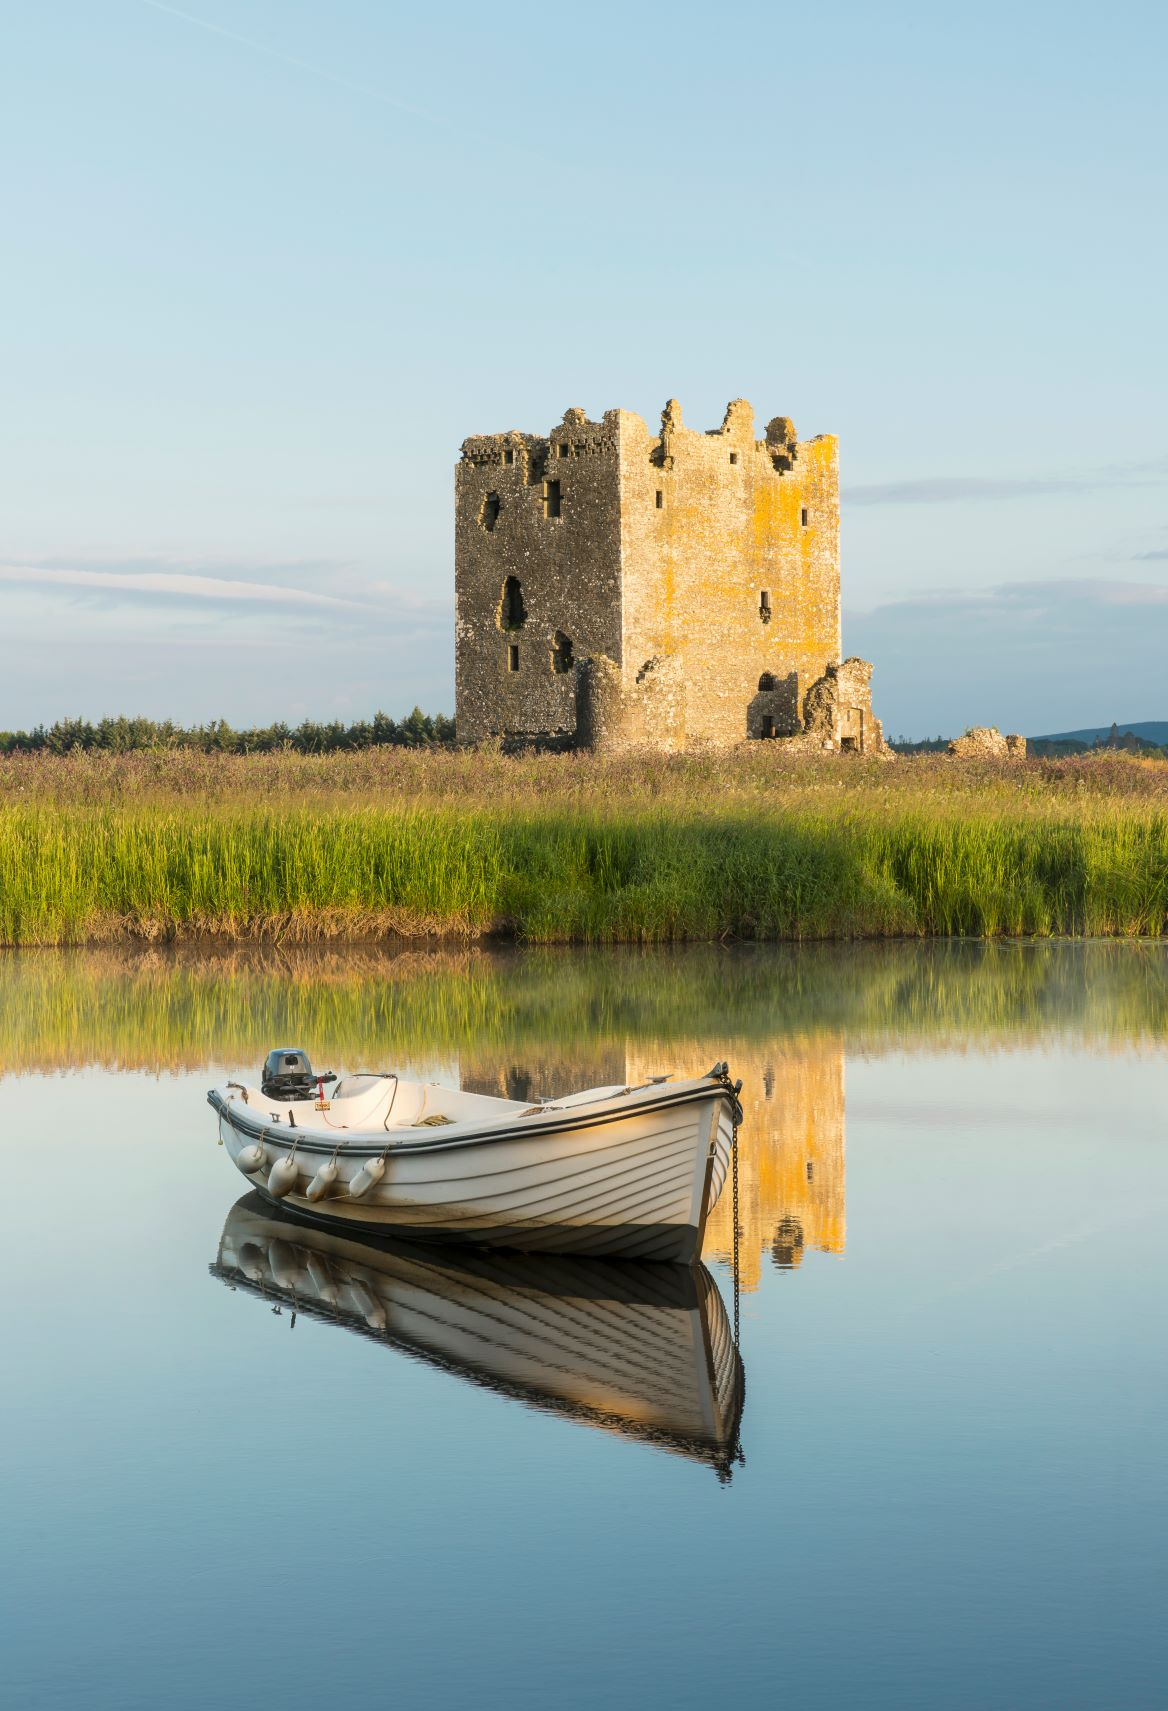 Threave Castle and Nature Reserve, Dumfries & Galloway